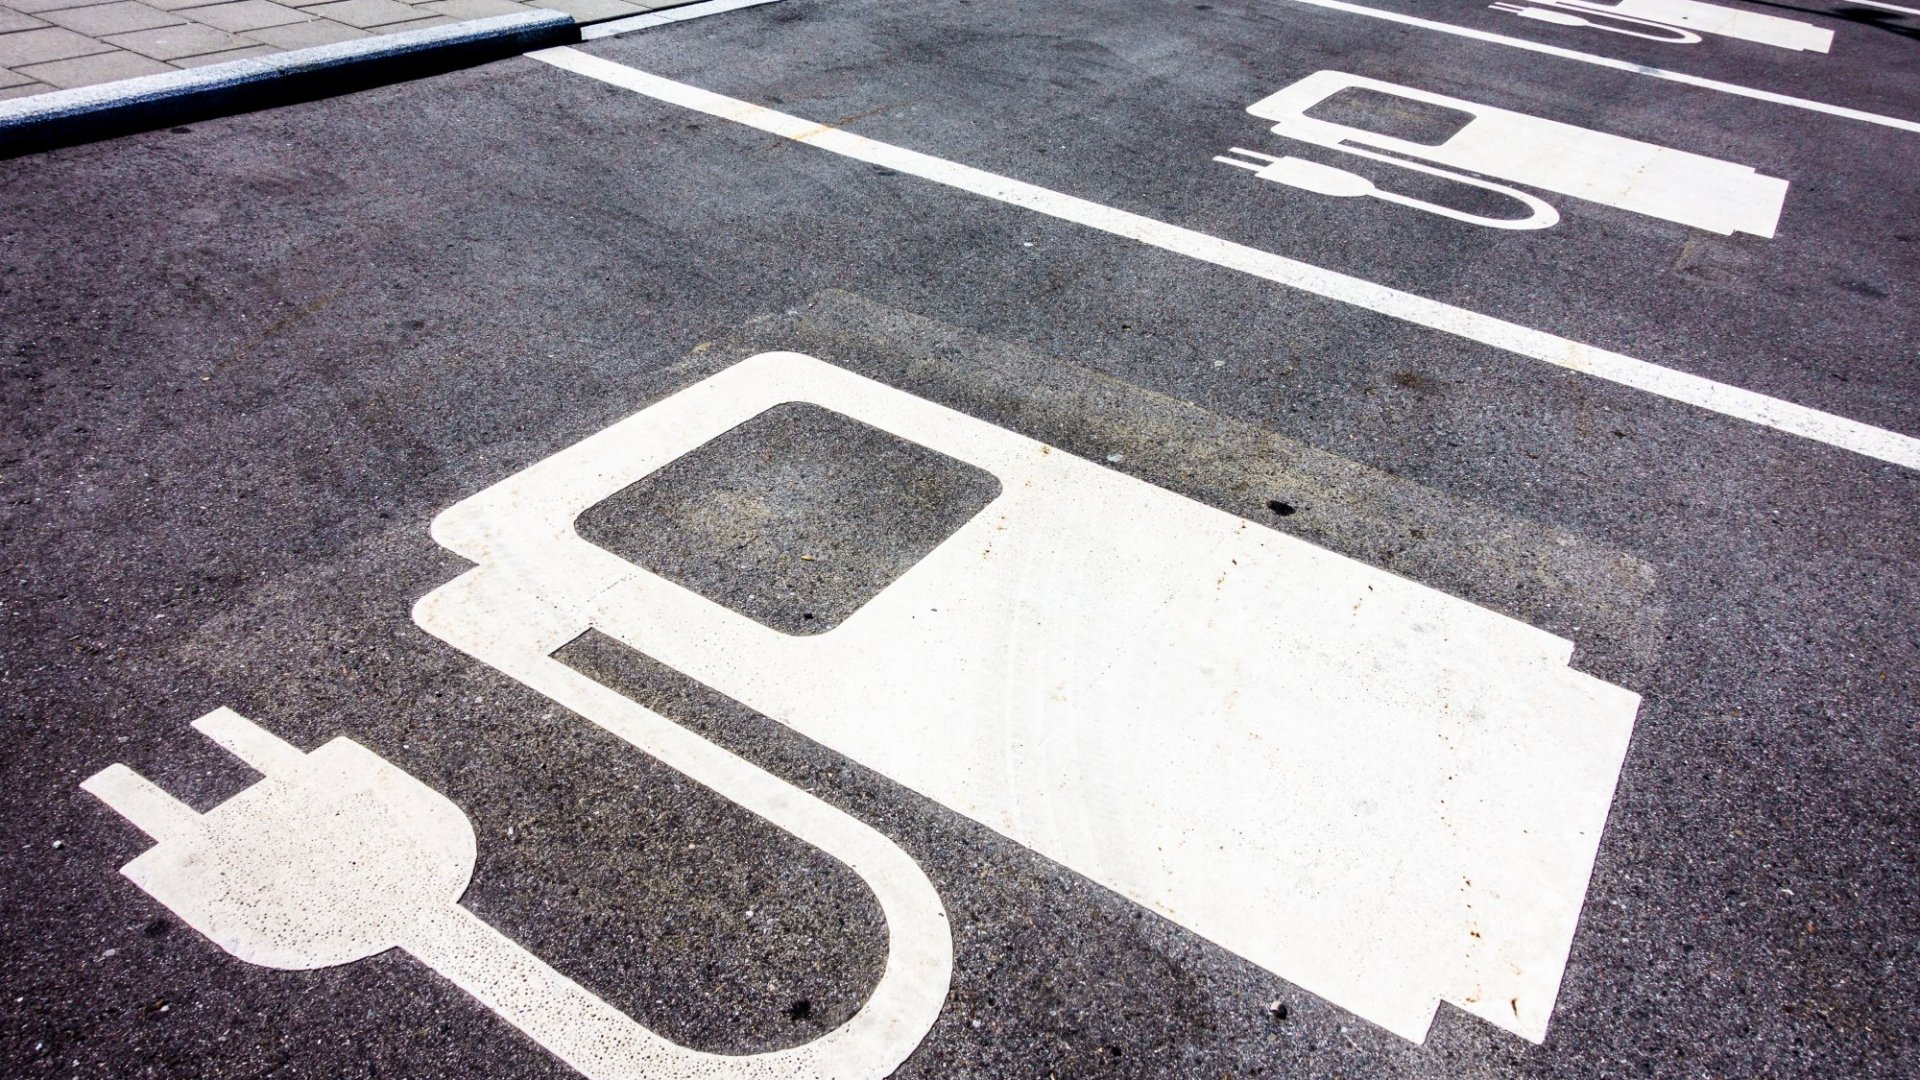 Electric vehicle charging continues to expand across North America.